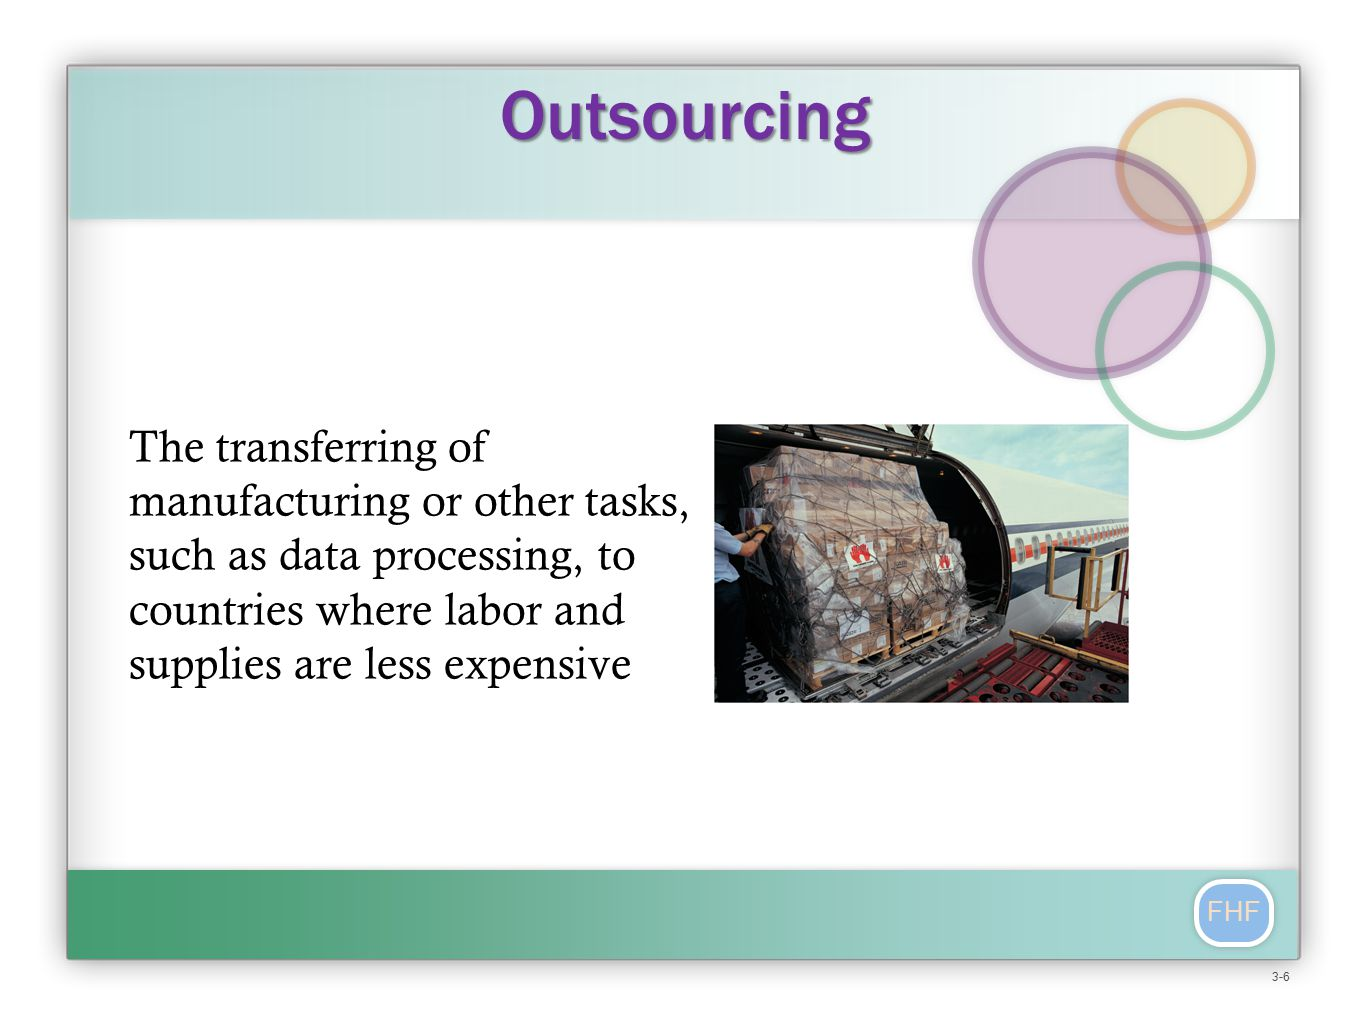 FHF The transferring of manufacturing or other tasks, such as data processing, to countries where labor and supplies are less expensive Outsourcing 3-6